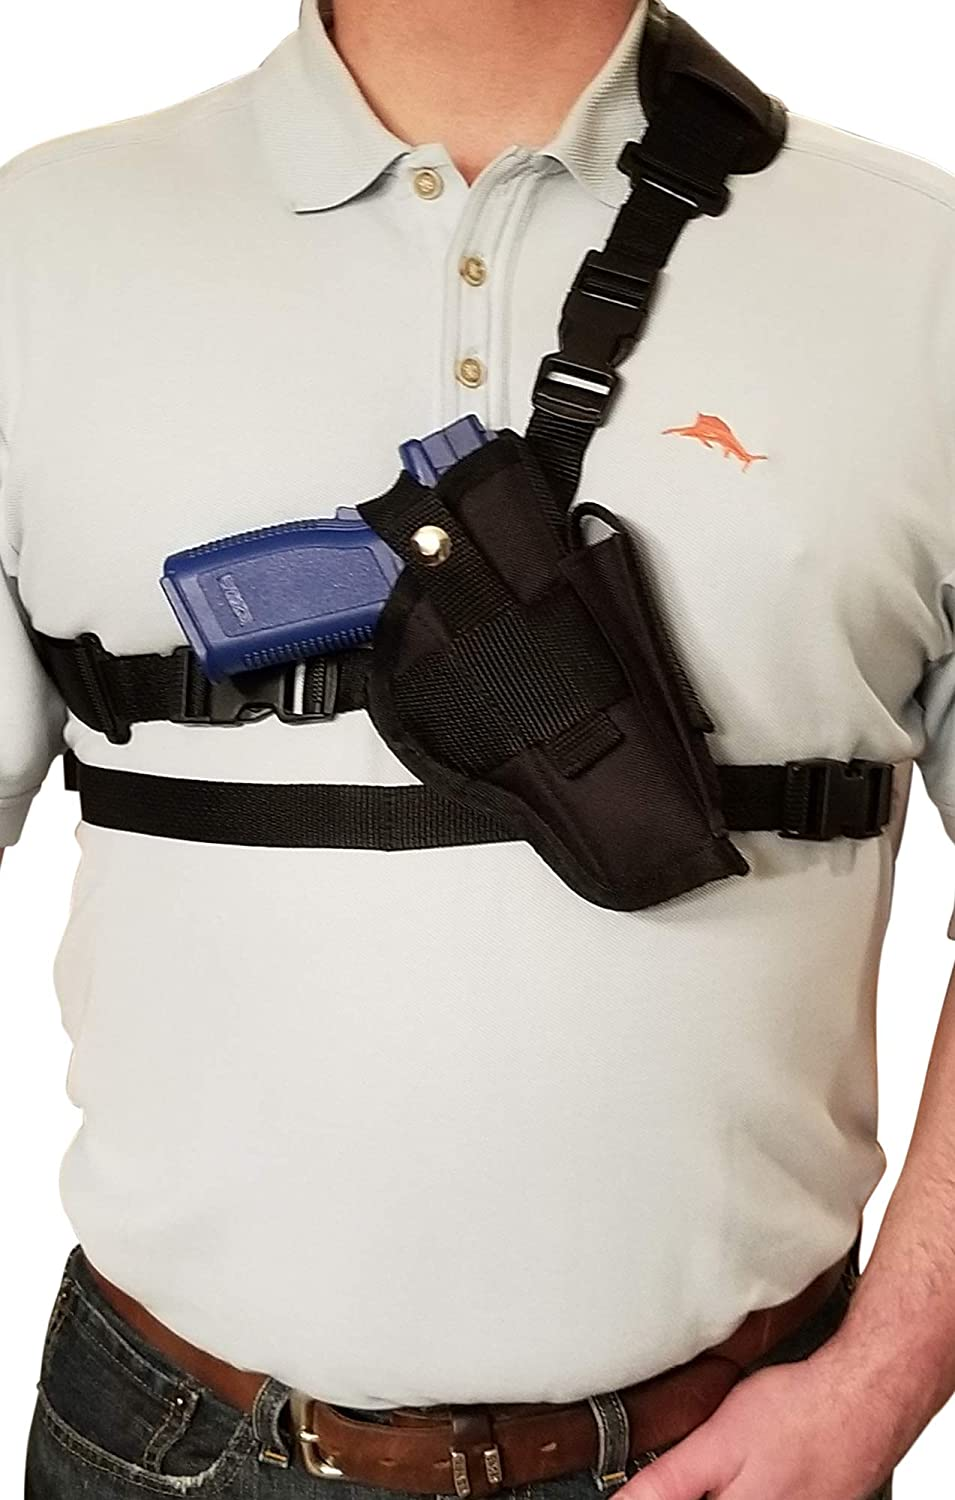 Silverhorse Holsters Chest Shoulder Gun 17 Glock Holster Now free Ranking TOP10 shipping Fits